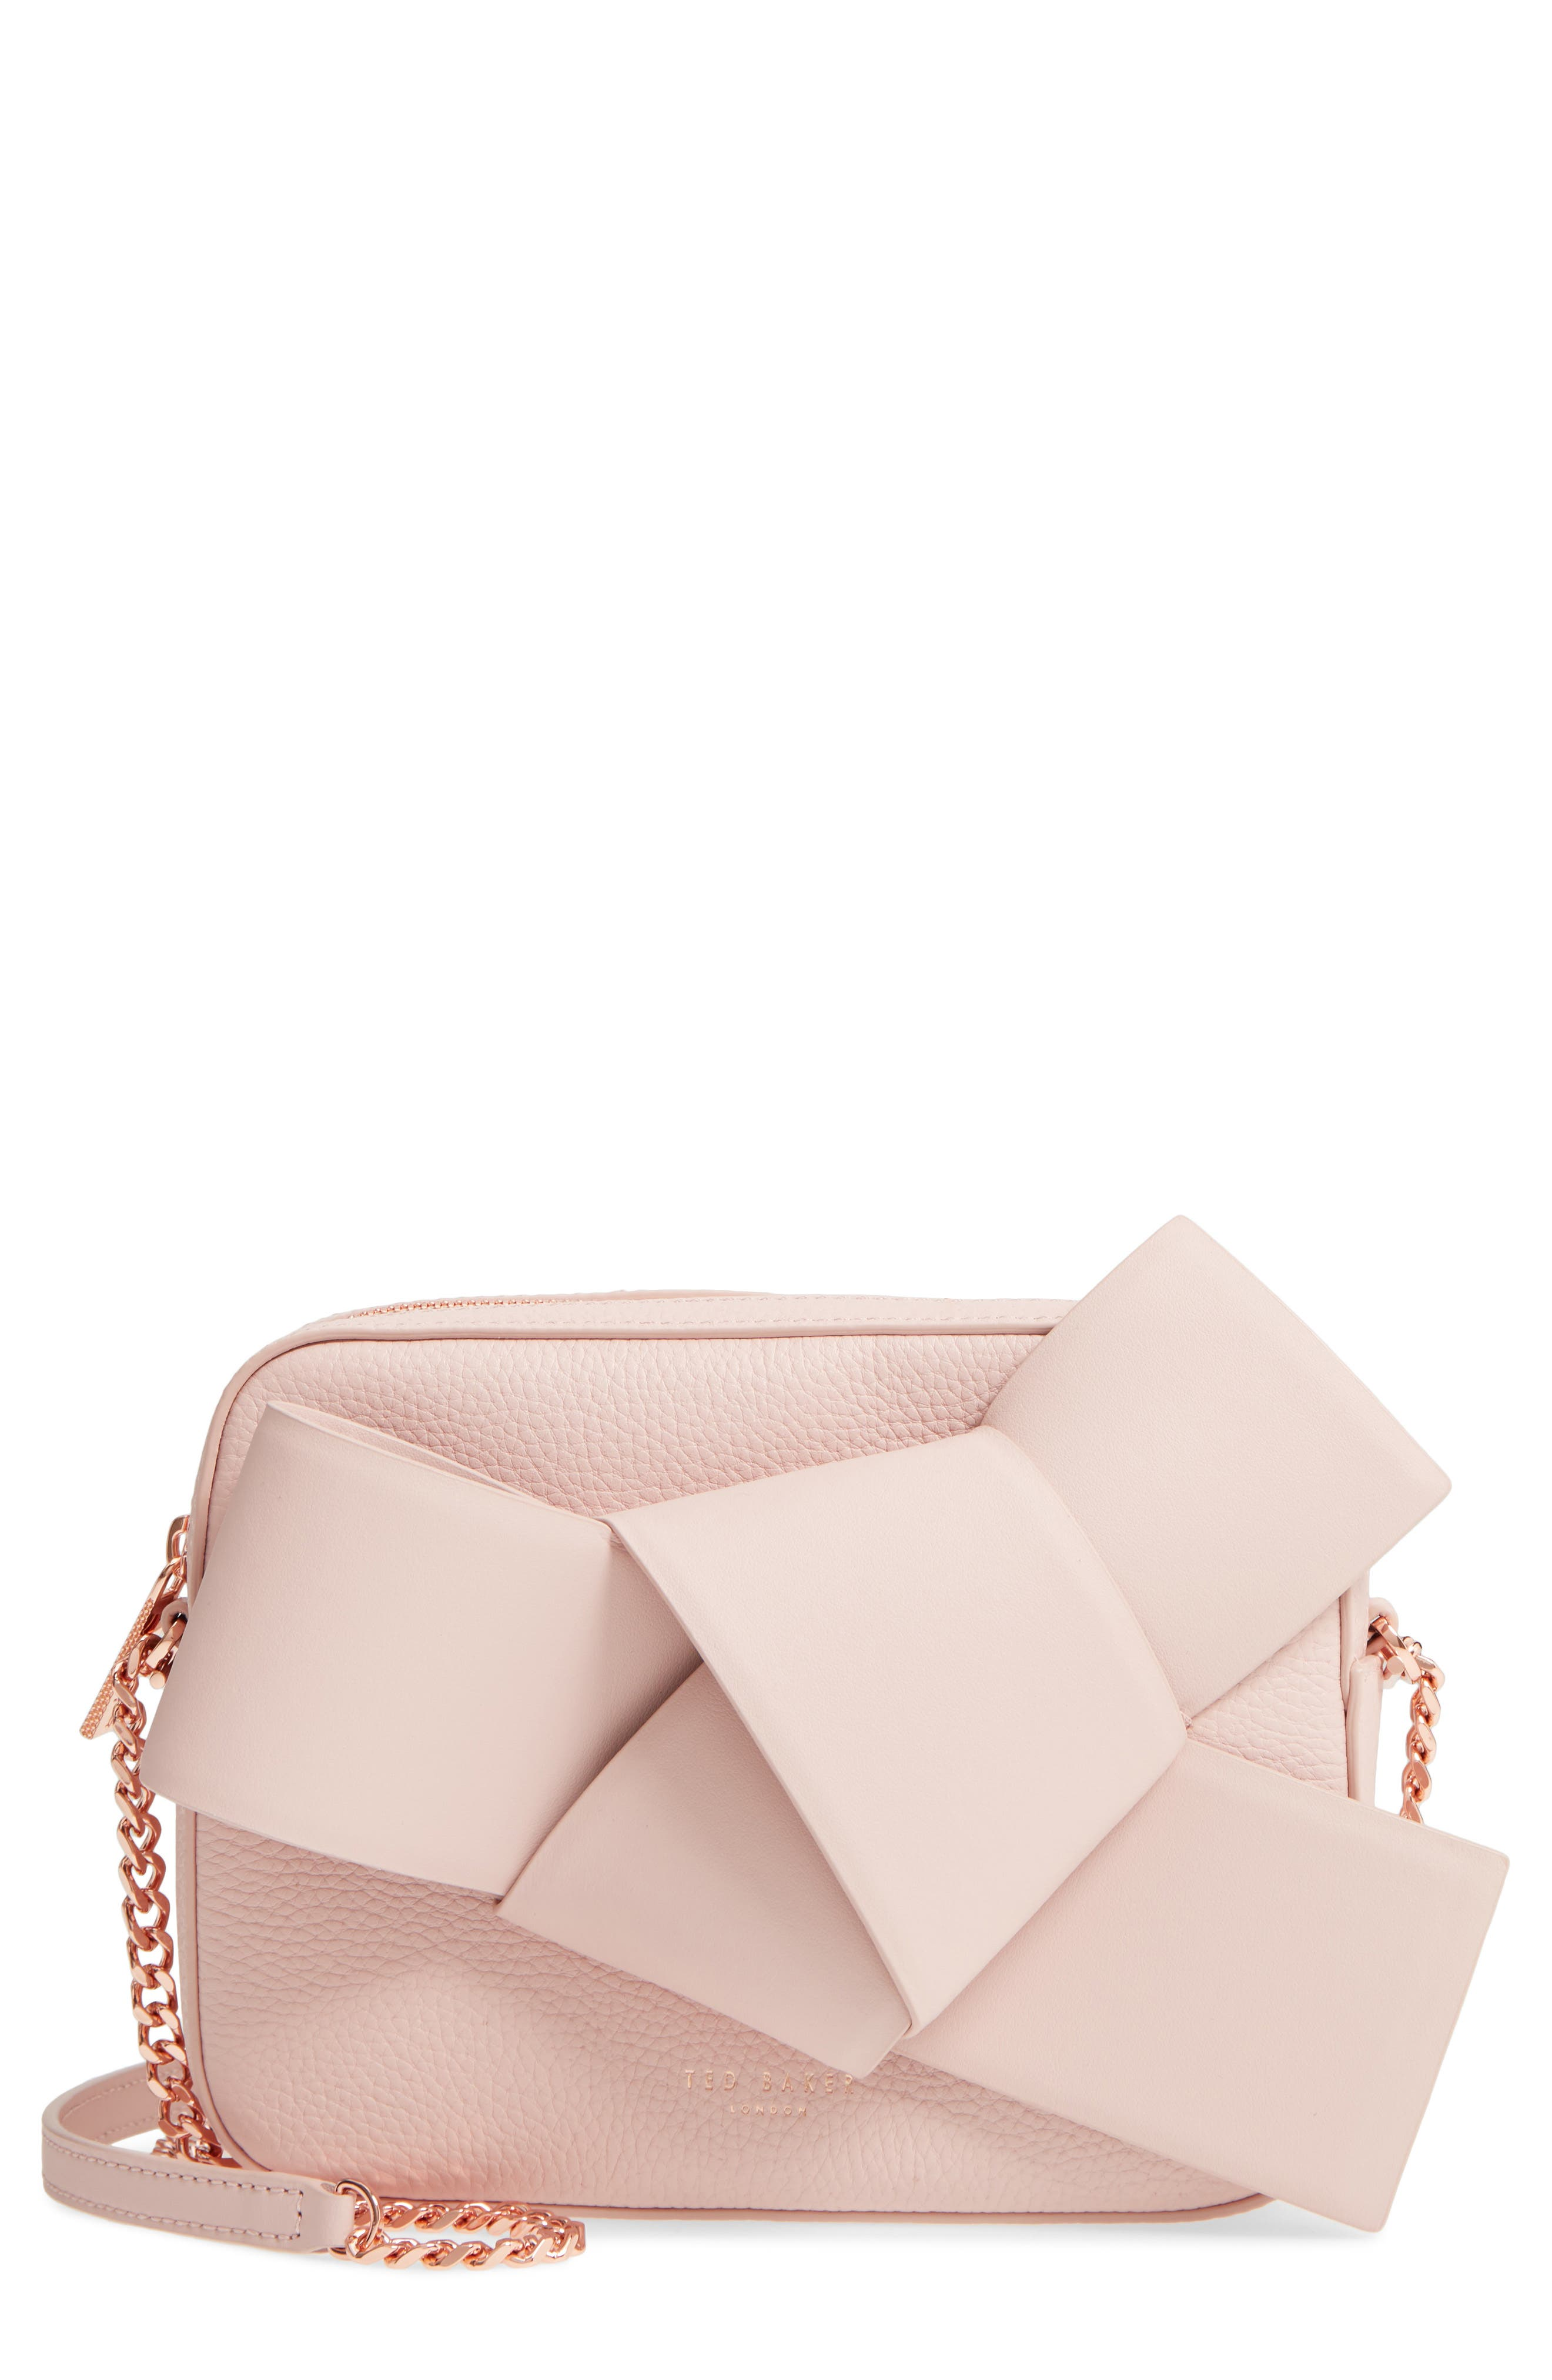 Giant Knot Leather Camera Bag,                             Main thumbnail 1, color,                             Nude Pink